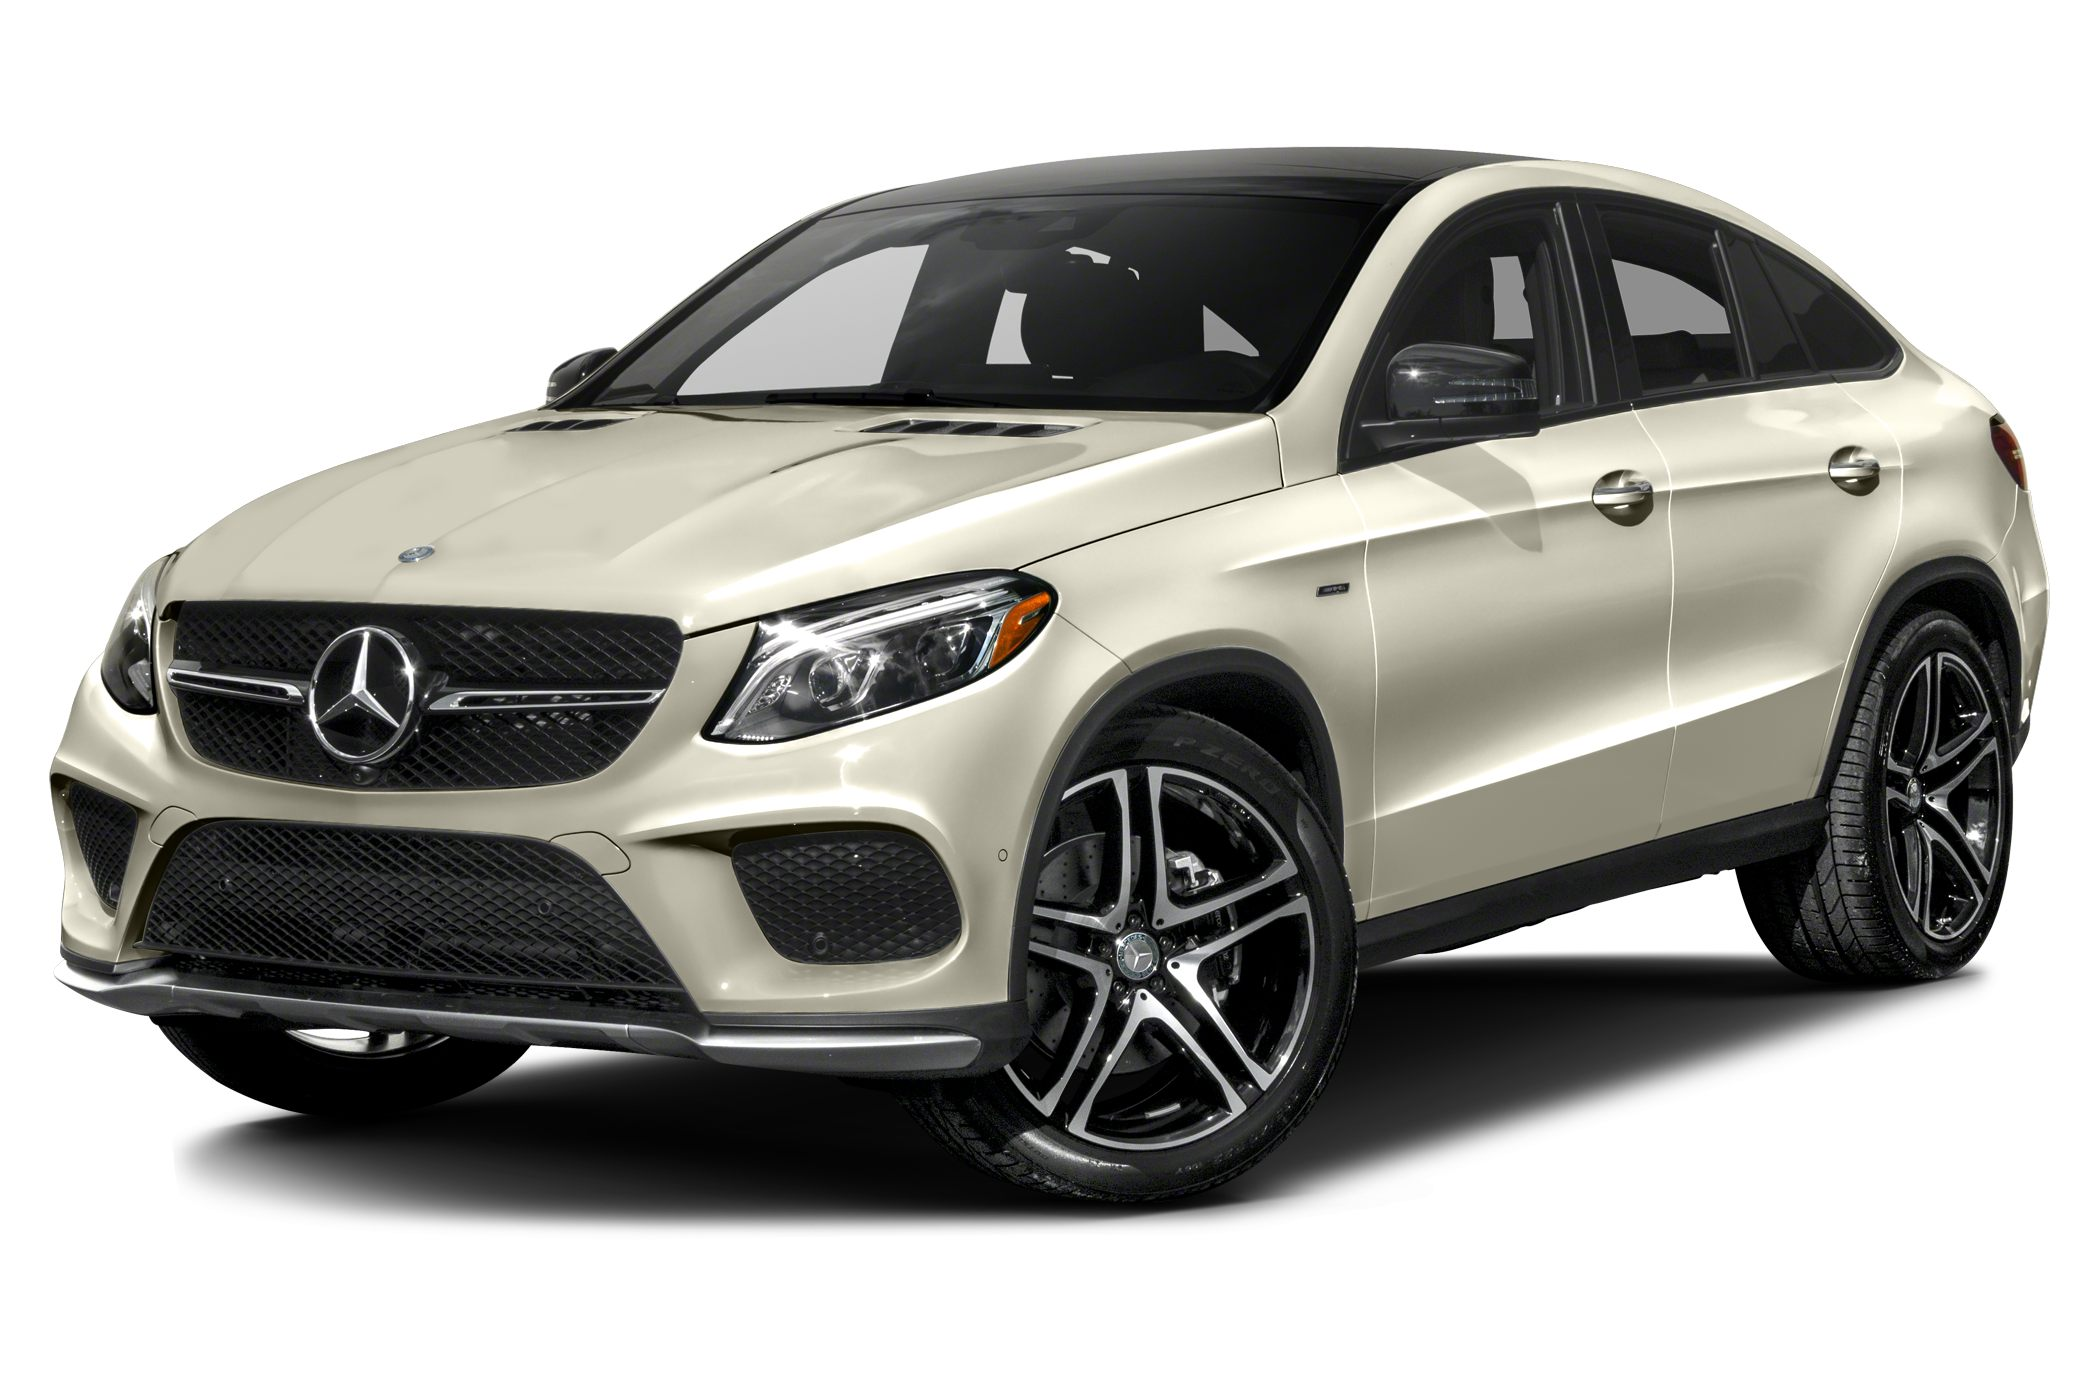 2016 MERCEDES GLE-Class GLE450 AMG 4MATIC Miles 11Color Diamond White Stock 21199 VIN 4JGED6